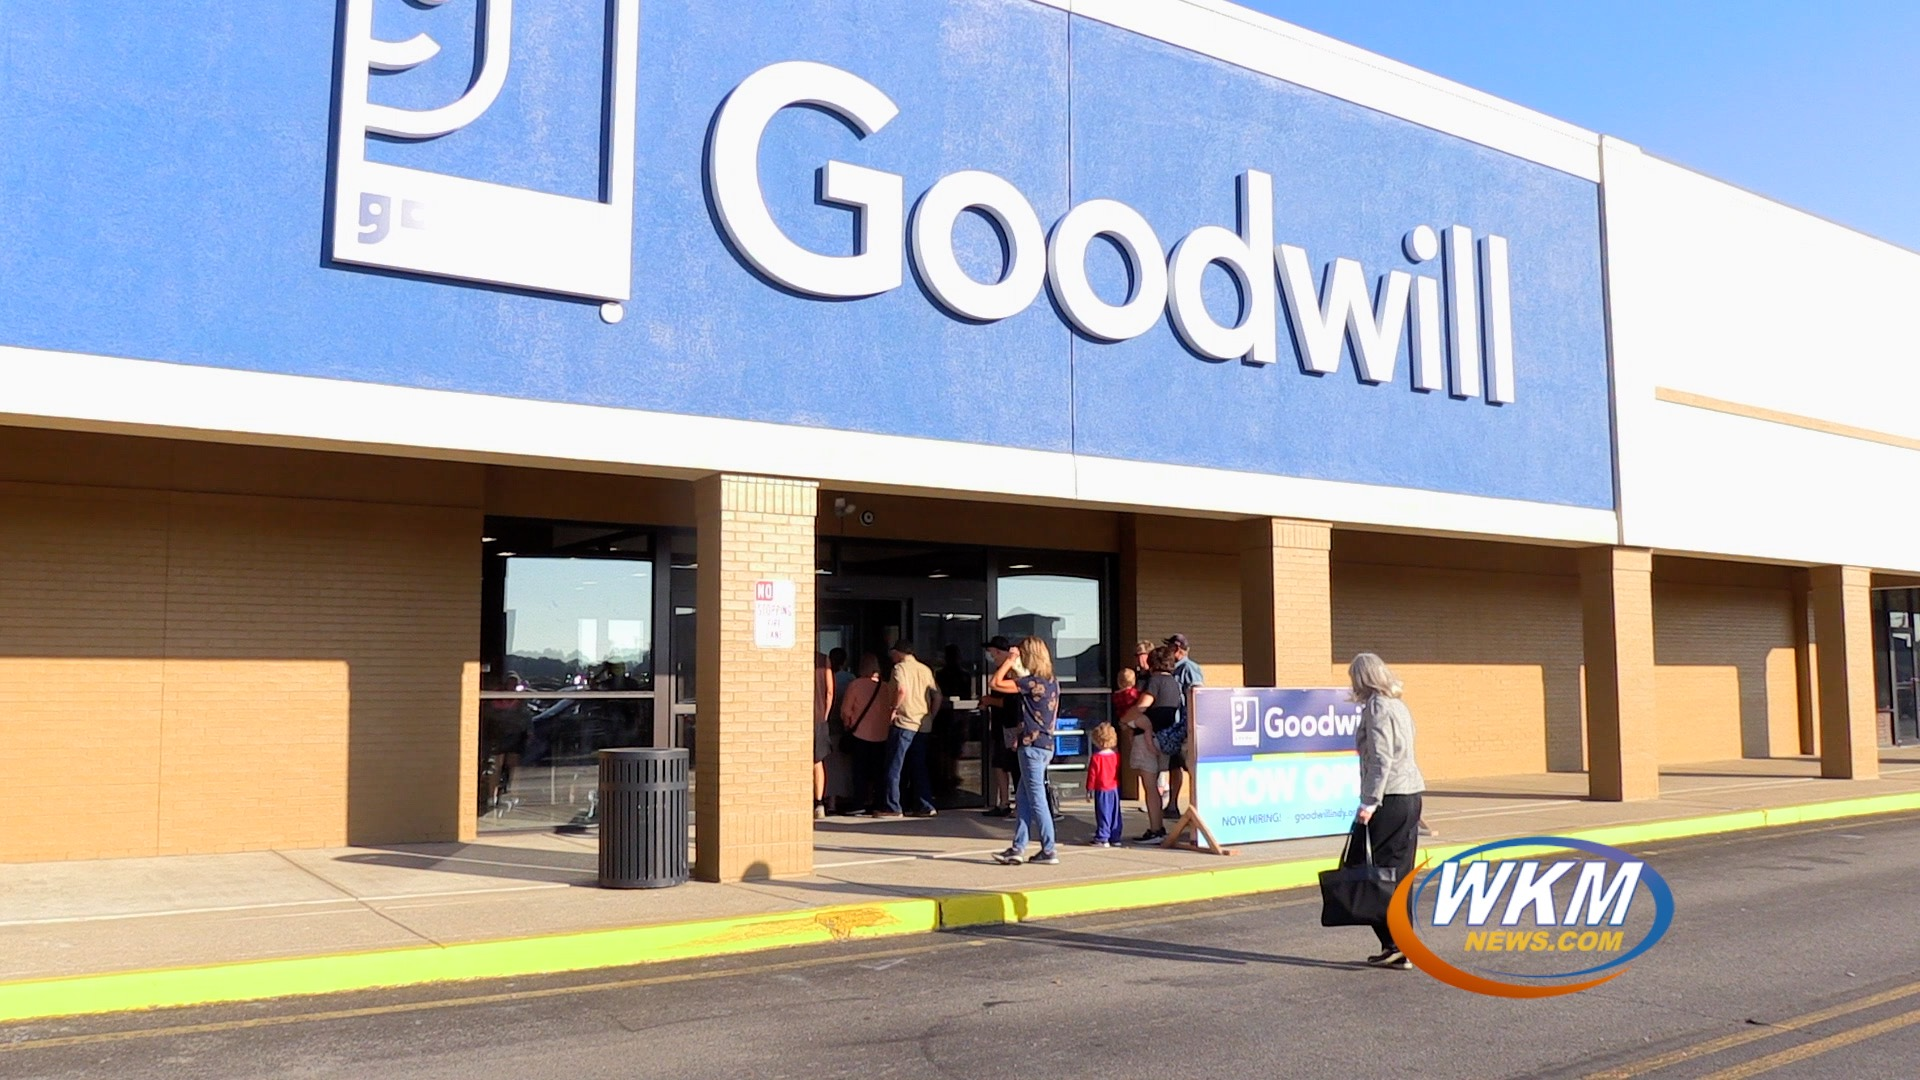 Madison Goodwill Celebrates Grand Opening of New Location